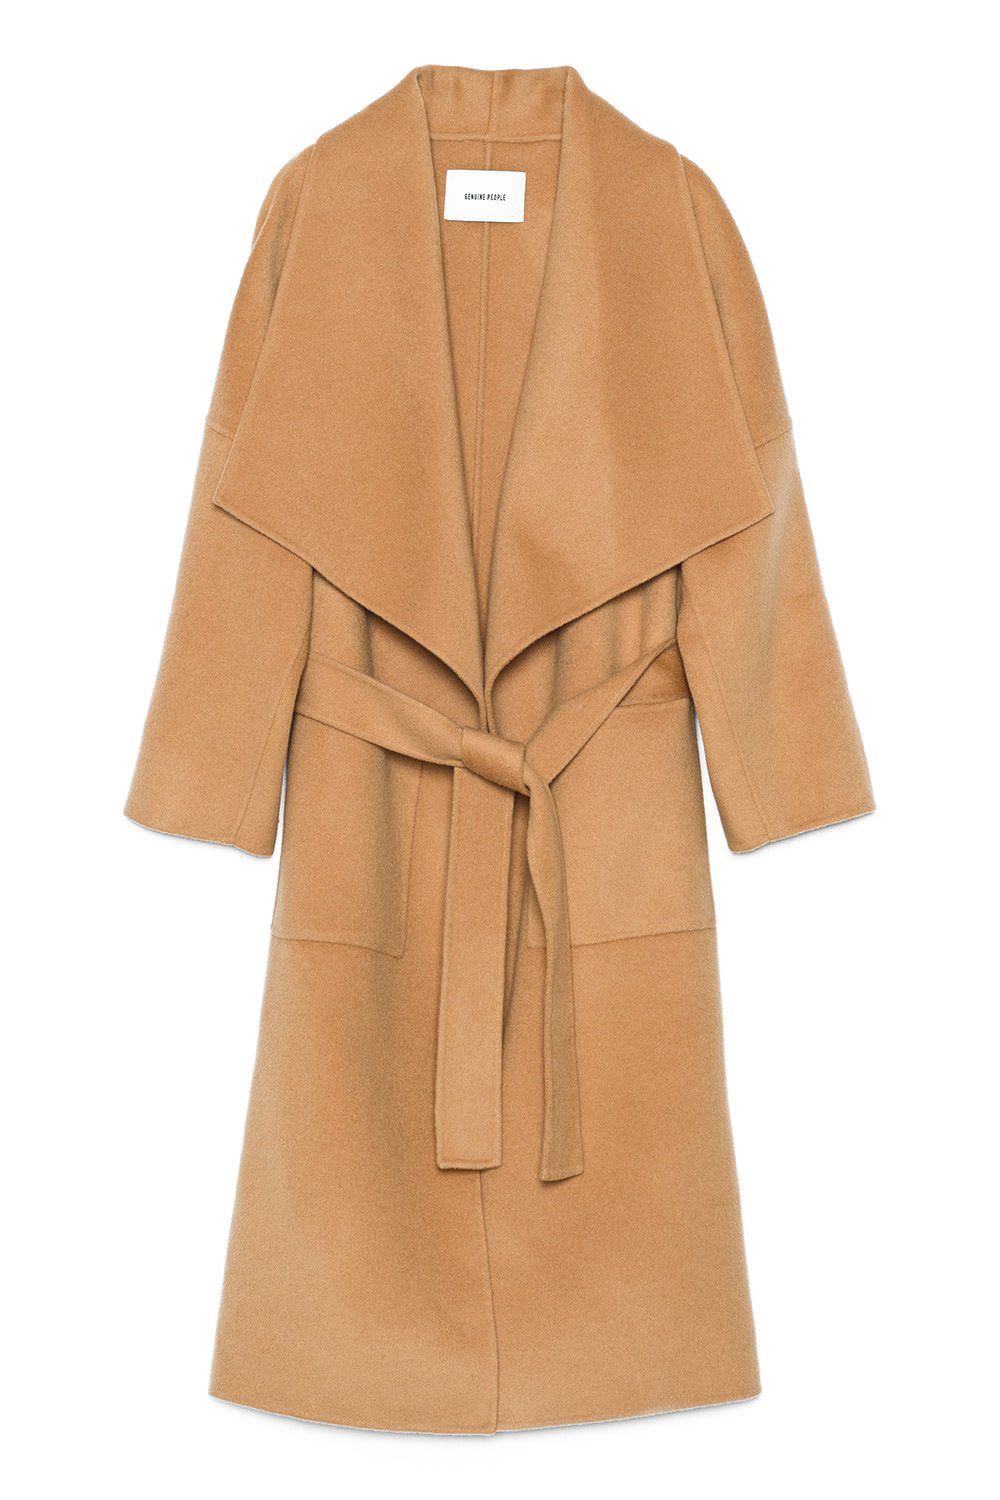 b932543157f3 A Wide-Collared Camel Coat for Walking the Afghan Hound You're Going to Own  Soon